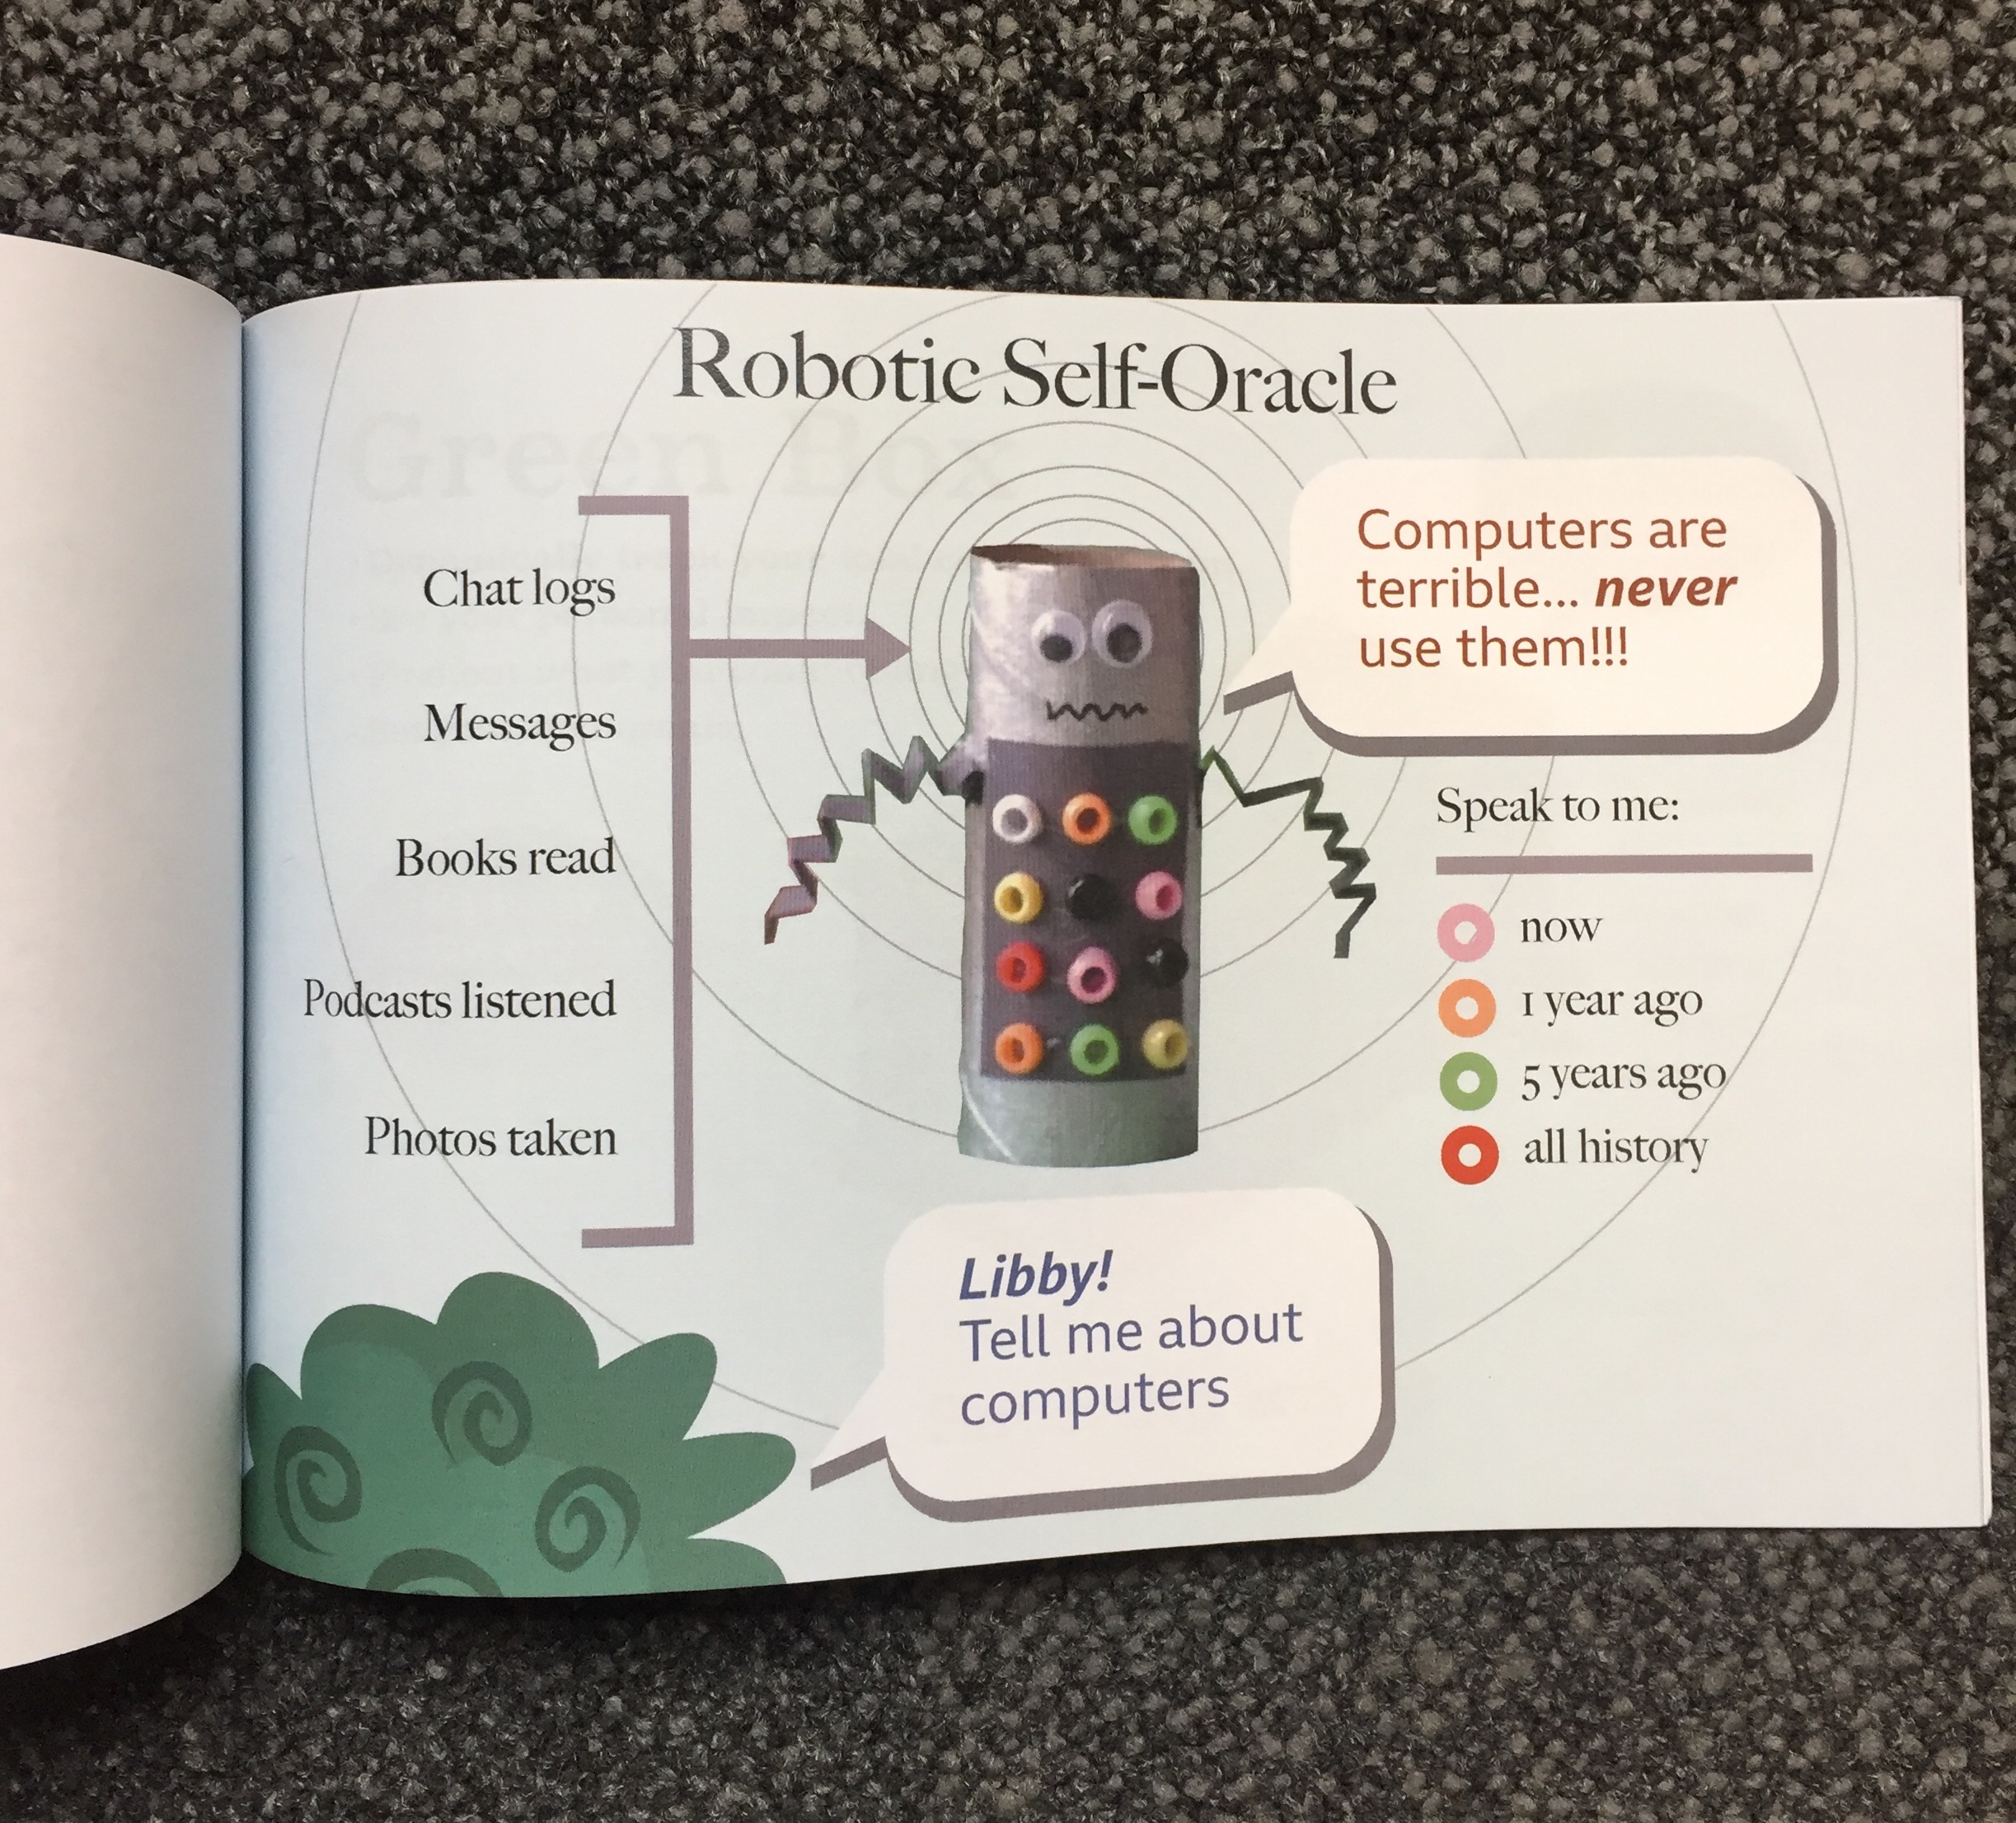 A photo of a book page illustrating robotic self-oracle